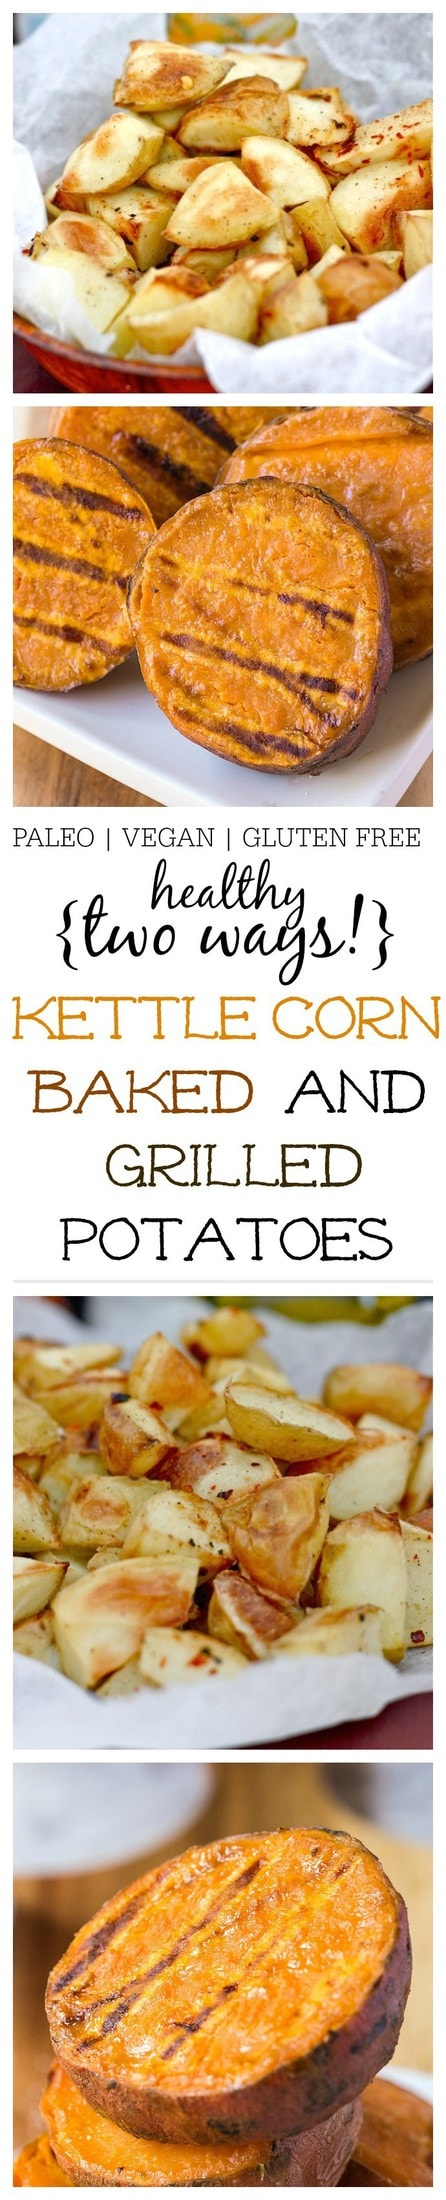 Kettle Corn Baked and Grilled Potatoes- Baked not fried, the humble potato gets a delicious (and healthy!) makeover for a flavour lovers dream! Sweet, salty and a little bit of spice, these kettle corn baked potatoes are paleo, gluten free, vegan, dairy free and are the perfect side for your picnic and are even delicious grilled! @thebigmansworld- thebigmansworld.com